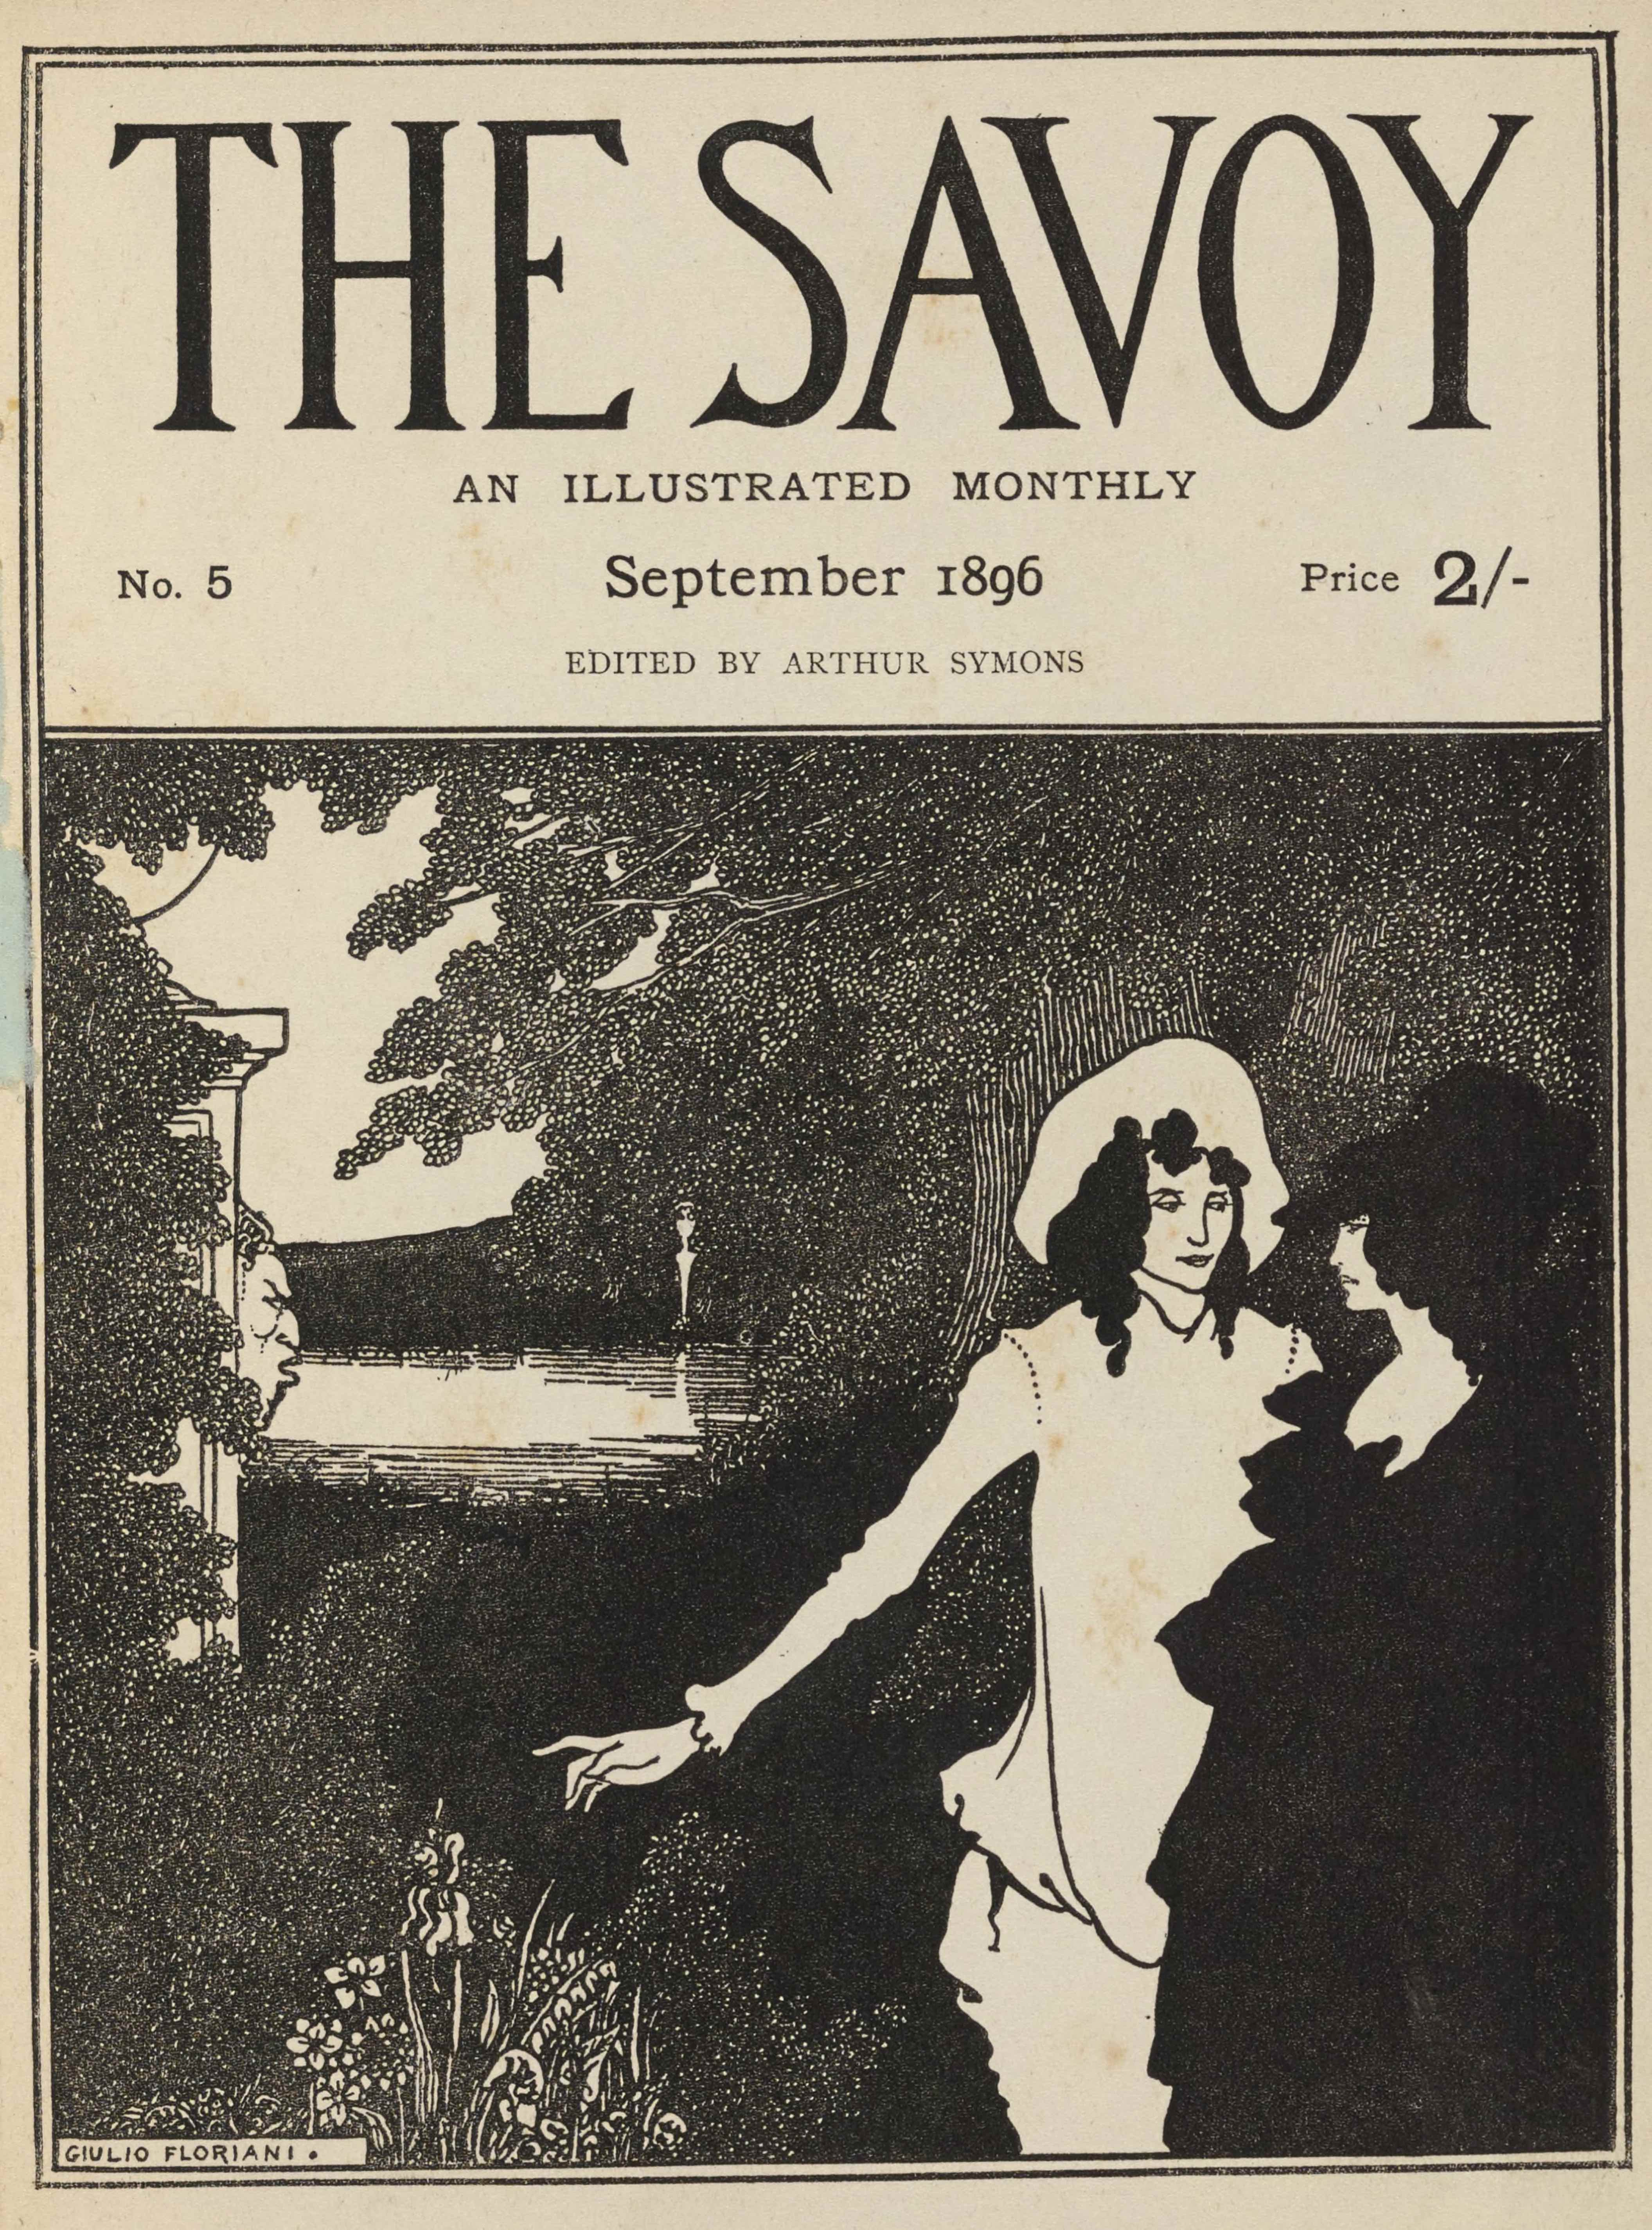 """The cover design combines letterpress and a line-block reproduction of Beardsley's pen-and-ink drawing and is in portrait orientation. The publishing information fillis the top third of the page and a visual image fills the bottom two-thirds. The cover design is outlined in a double-lined border on all sides, with another double-lined horizontal border separating the publishing information from the visual imagery. The publishing information includes the title text: """"THE SAVOY"""" [caps] centered in the top line in large display type. In the line below is the text: """"AN ILLUSTRATED MONTHLY"""" [caps]. Below this is a line of text aligned to the left, centre, and the right, respectively: """"No. 5 // September 1896 // Price 2/-"""". In the line below is the text: """"EDITED BY ARTHUR SYMONS"""" [caps]. The visual image below is in a near perfect square shape and is heavily inked in black. The composition features two figures on the right, a man and a woman, standing in a park with trees, statues, and a small pond. On the far right of the composition is a woman in profile, dressed entirely in black. To her left, facing the viewer, but with his head turned slightly towards his companion, is a man dressed in the white dress of a Pierrot. He is wearing a long-sleeved white shirt that is baggy and falls slightly over the front of his white baggy pants. His dark curly hair emerges from a large white hat. His left arm extends straight out to the centre of the composition. The black dress of the woman on the right blends into the background of the dark forest behind the two figures. Her dress neckline is a boat-neck that shows some of her stark white chest. She has dark curly hair that emerges from underneath a black hat. The left and top edges of the image are lined with branches that have many small buds of leaves. Facing each other on a diagonal across the pond are two statues or hermes. The statue on the far side of the pond and in the middleground of the composition is in irregular hour-gl"""